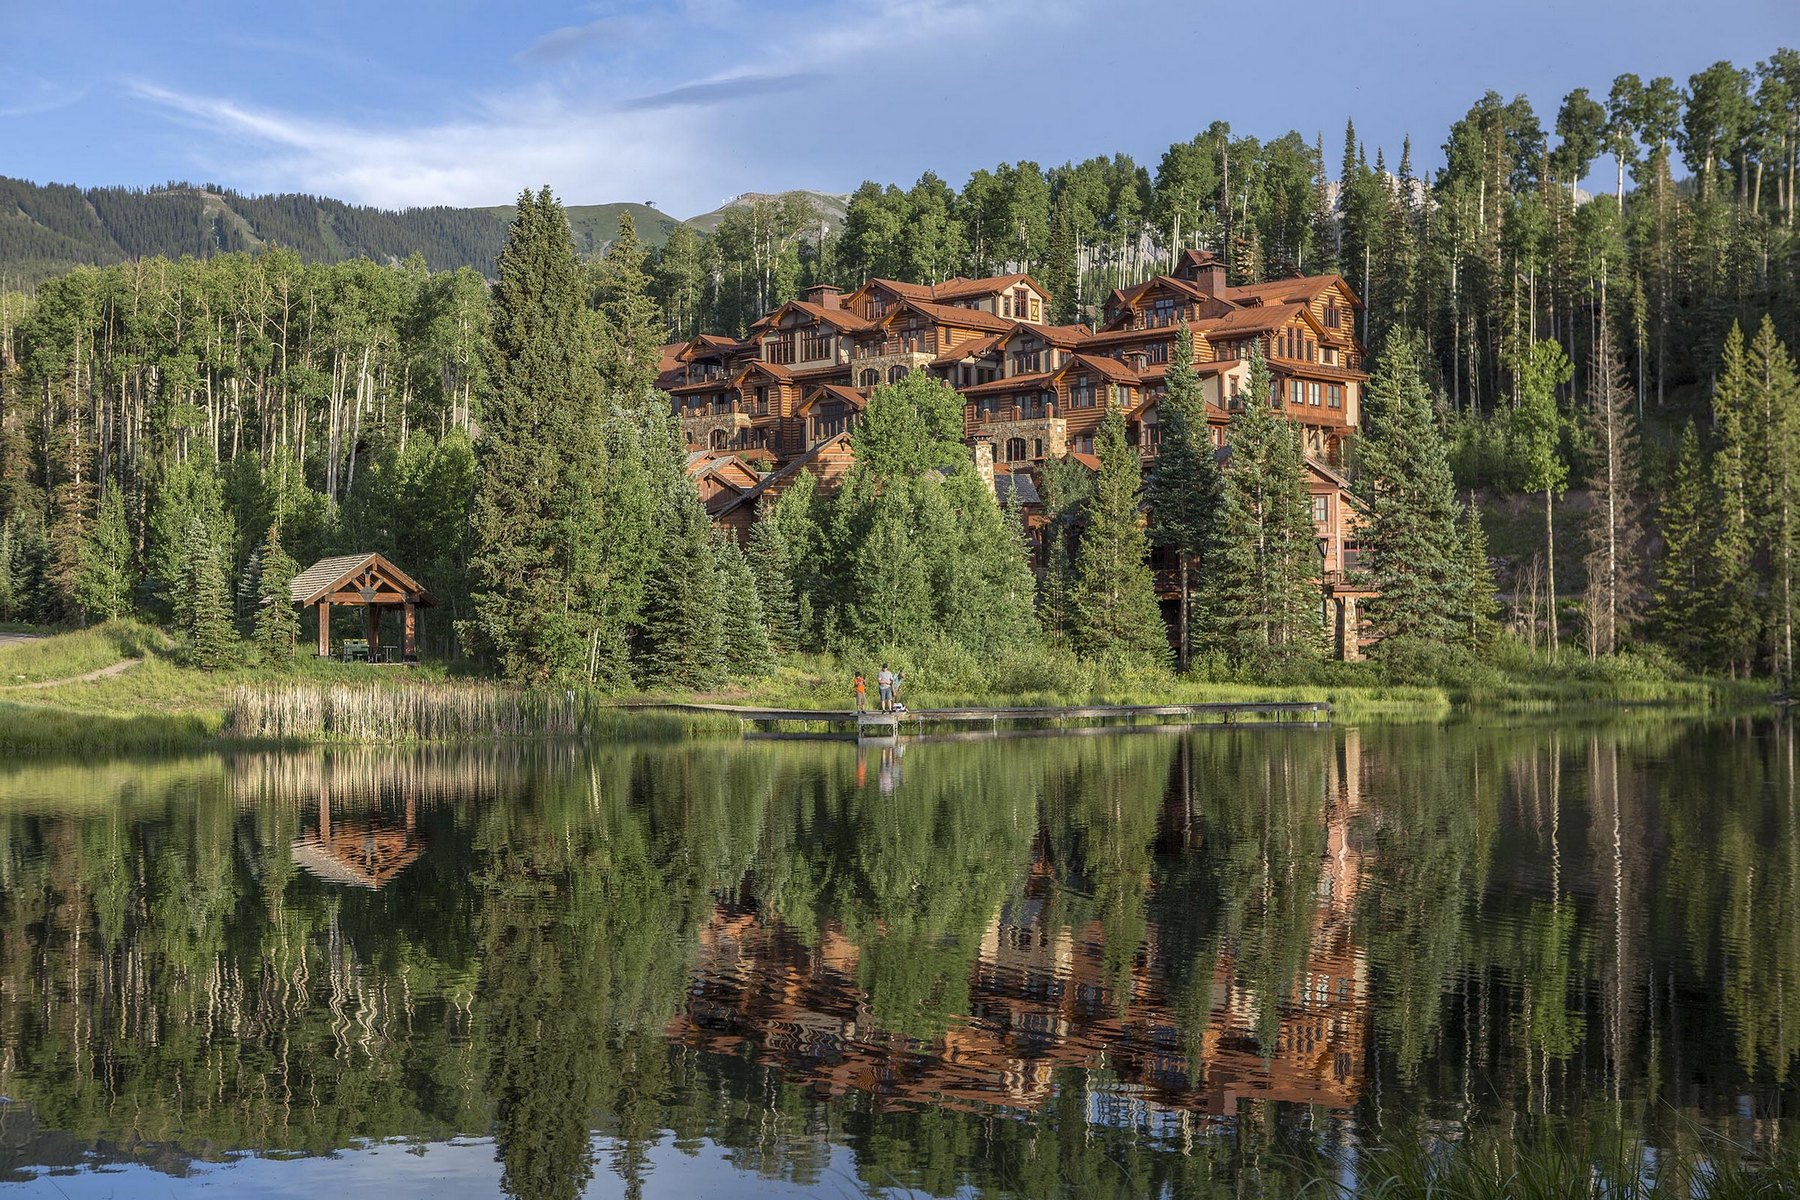 Condominium for Sale at Elkstone 21, Unit 305 12 Elkstone Place, Unit 305 Telluride, Colorado, 81435 United States